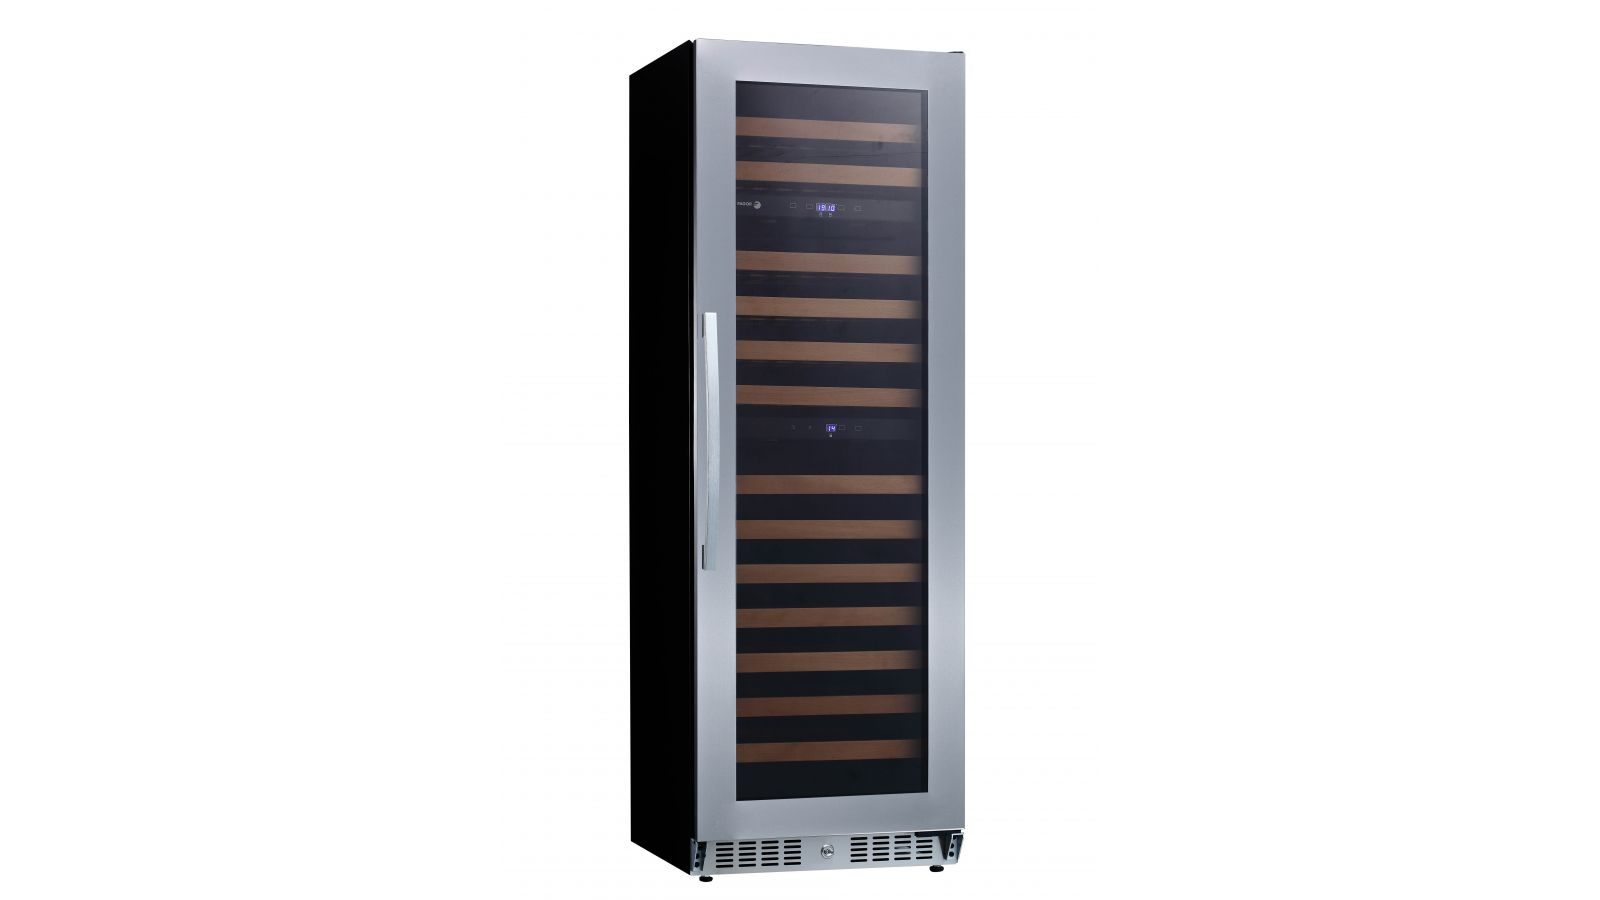 WC-118TZ Triple Zone Wine Cooler